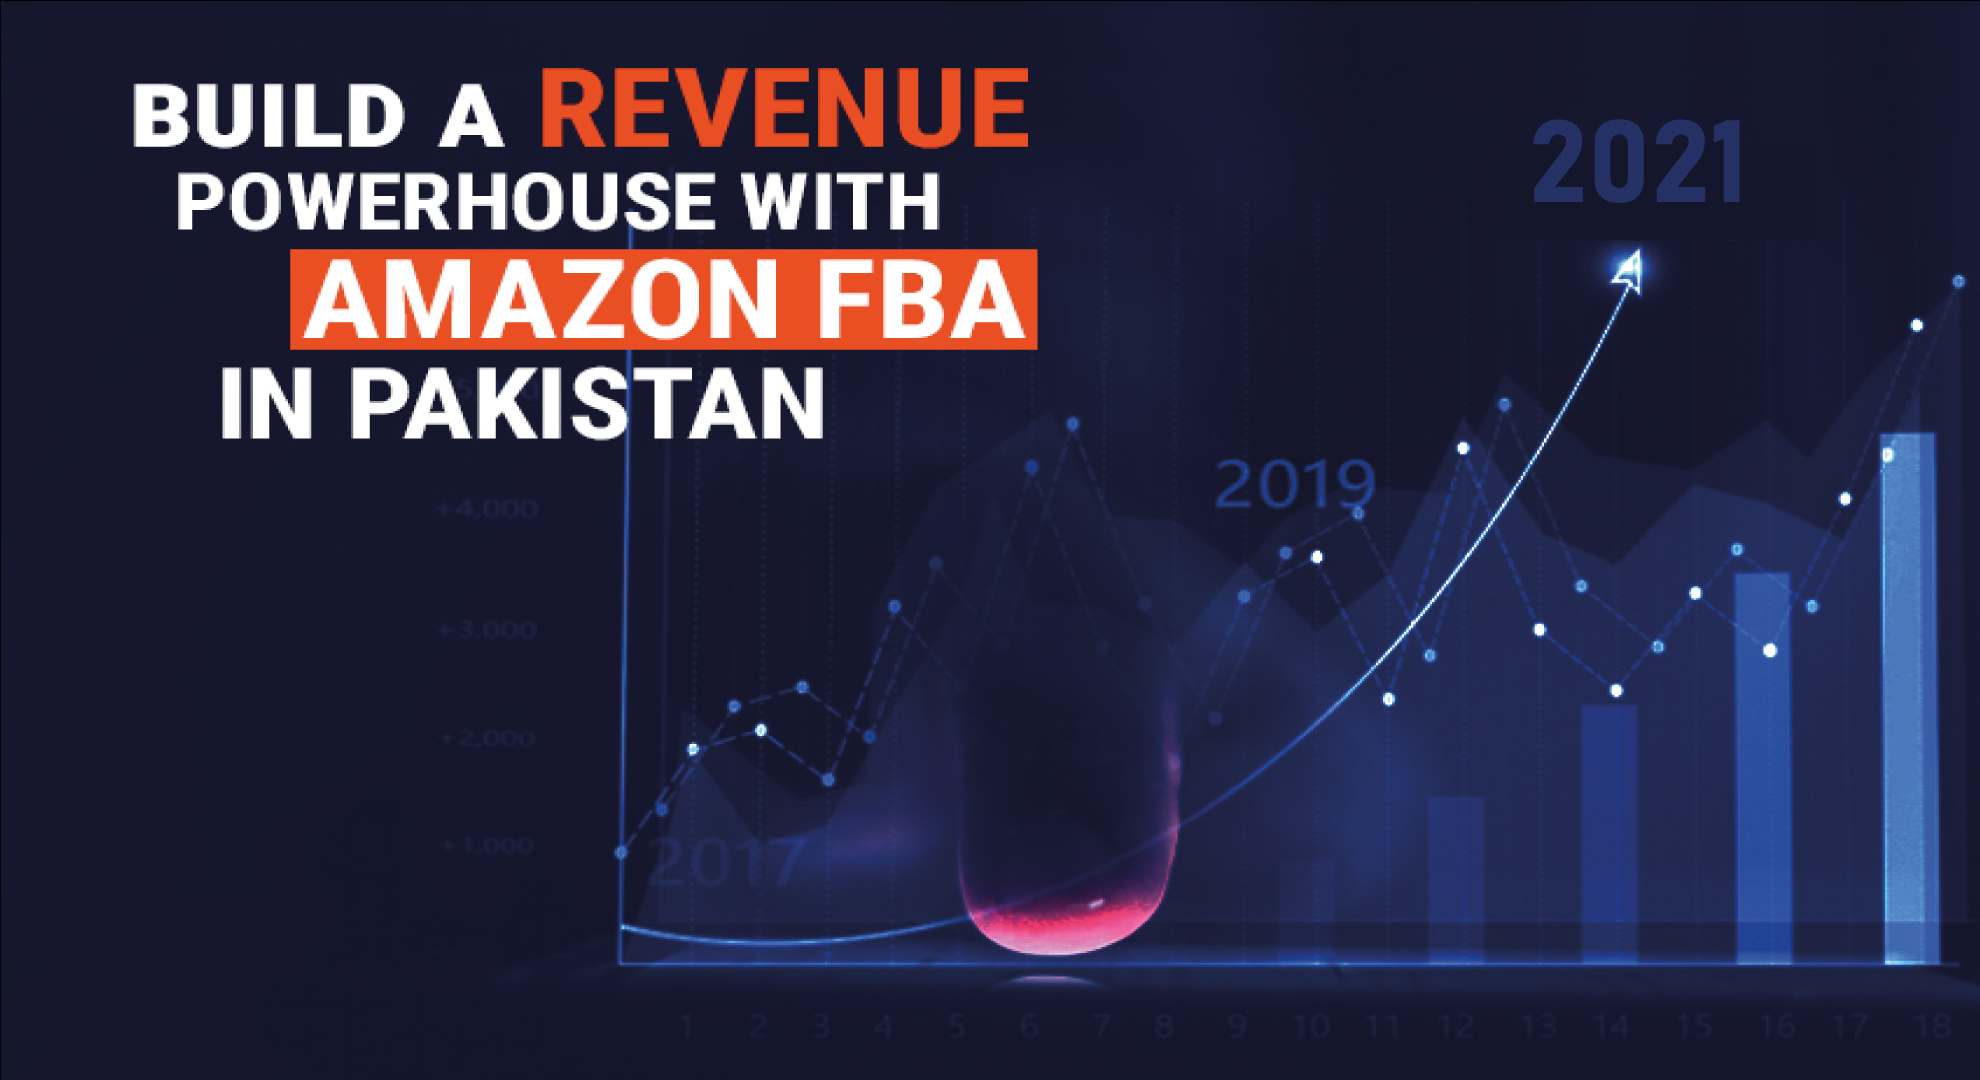 What-Is-The-Earning-Potential-Of-An-Amazon-FBA-Business-In-Pakistann